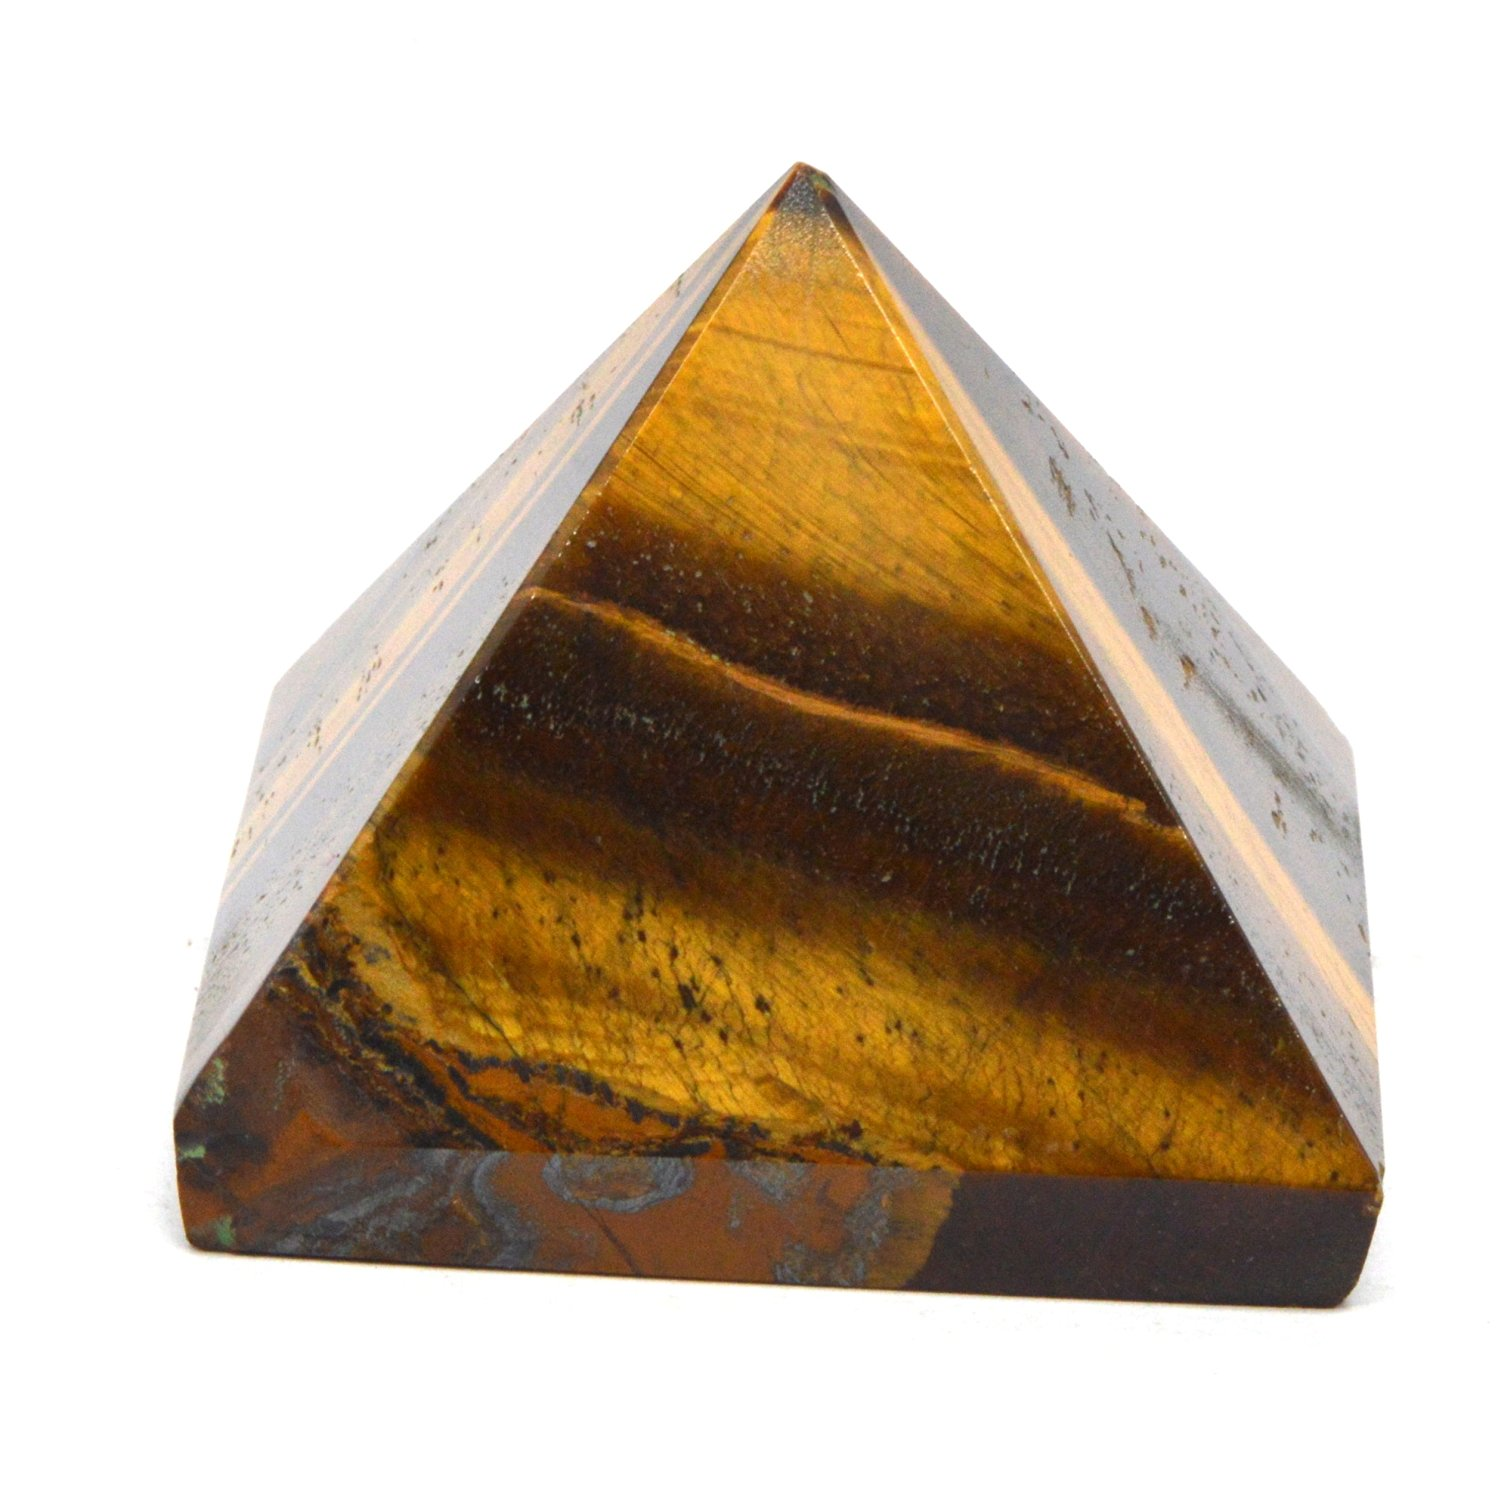 Healing Crystals India 40-50mm Natural Gemstone Pyramid Aura Balancing Reiki Energy Charged Free eBook about Crystals Healing (Tiger Eye)